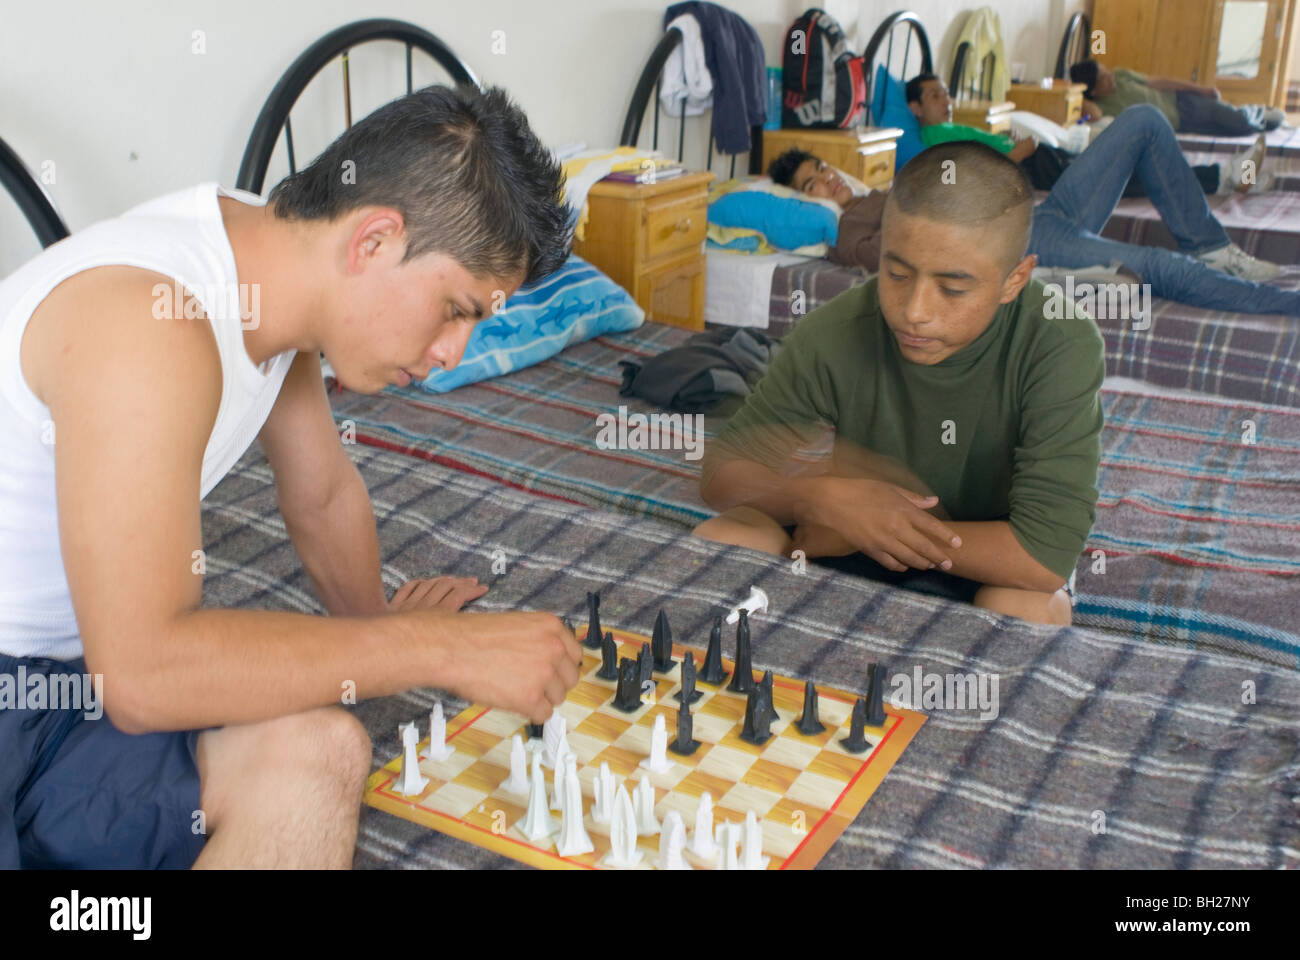 At the municipally-run Addiction Treatment Center in Ciudad Nezahualcóyotl, resident addicts play chess. - Stock Image